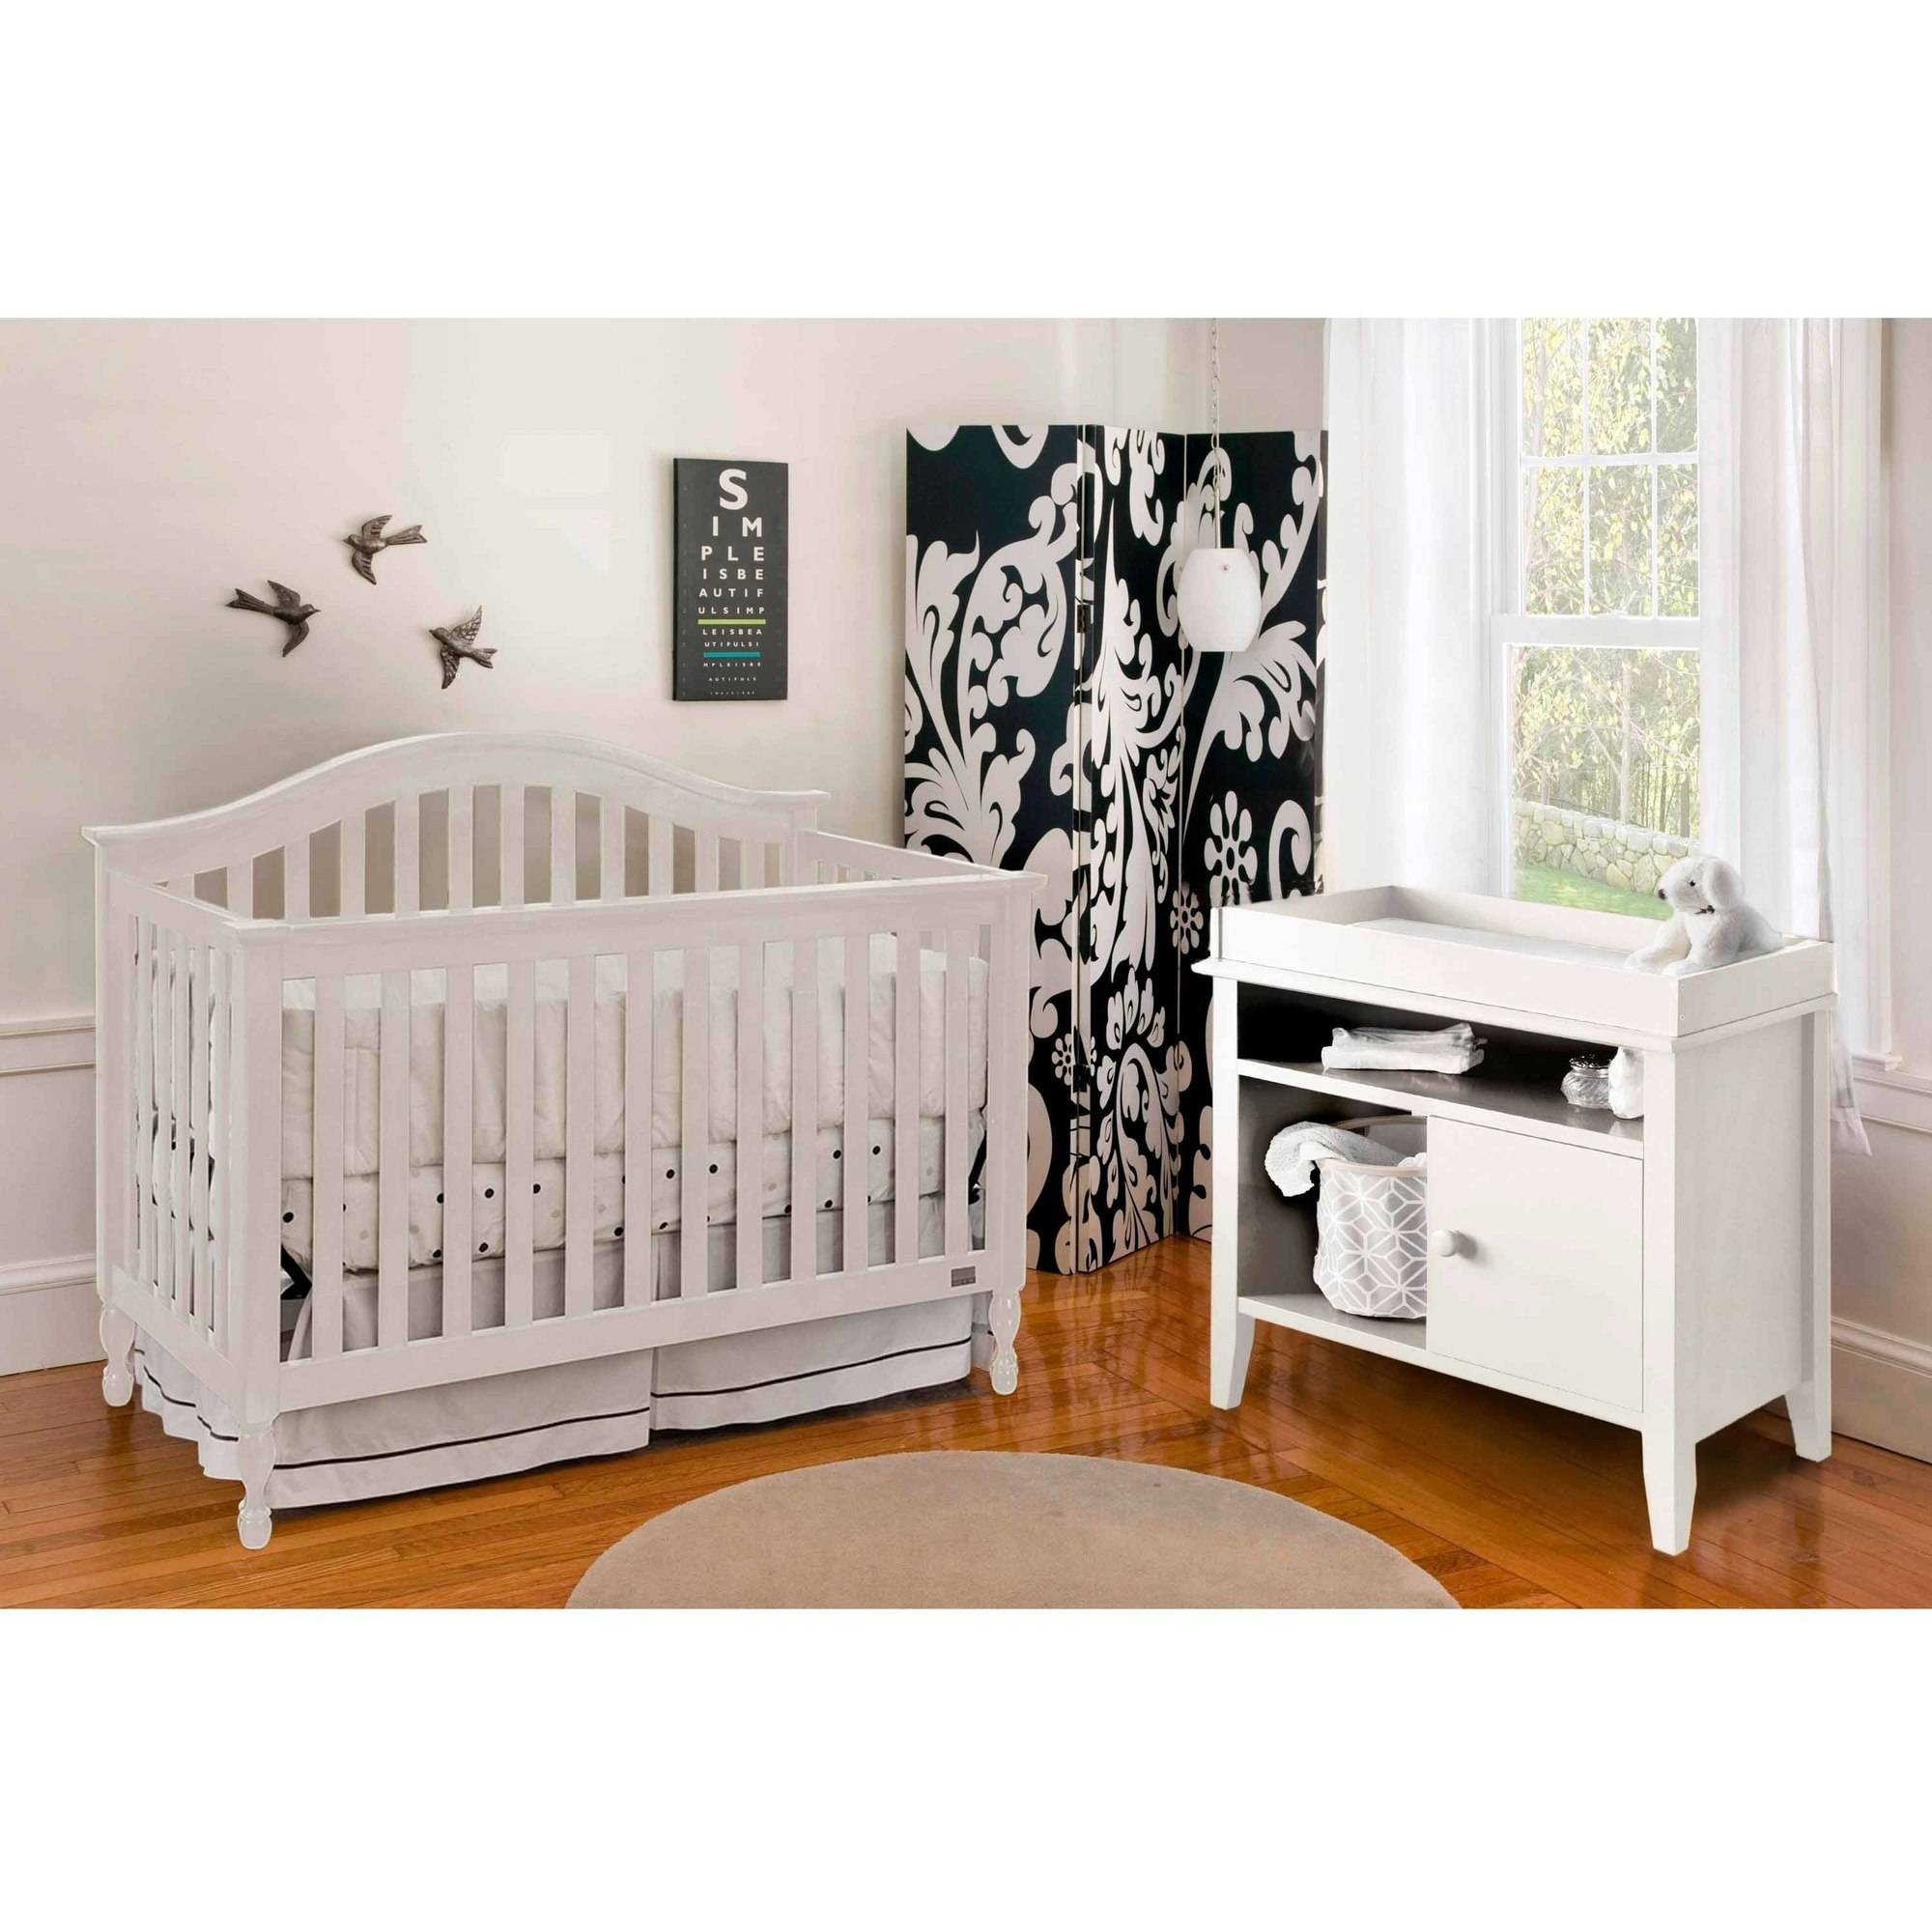 Lolly and Me Bailey 4-in-1 Fixed Side Convertible Crib, White